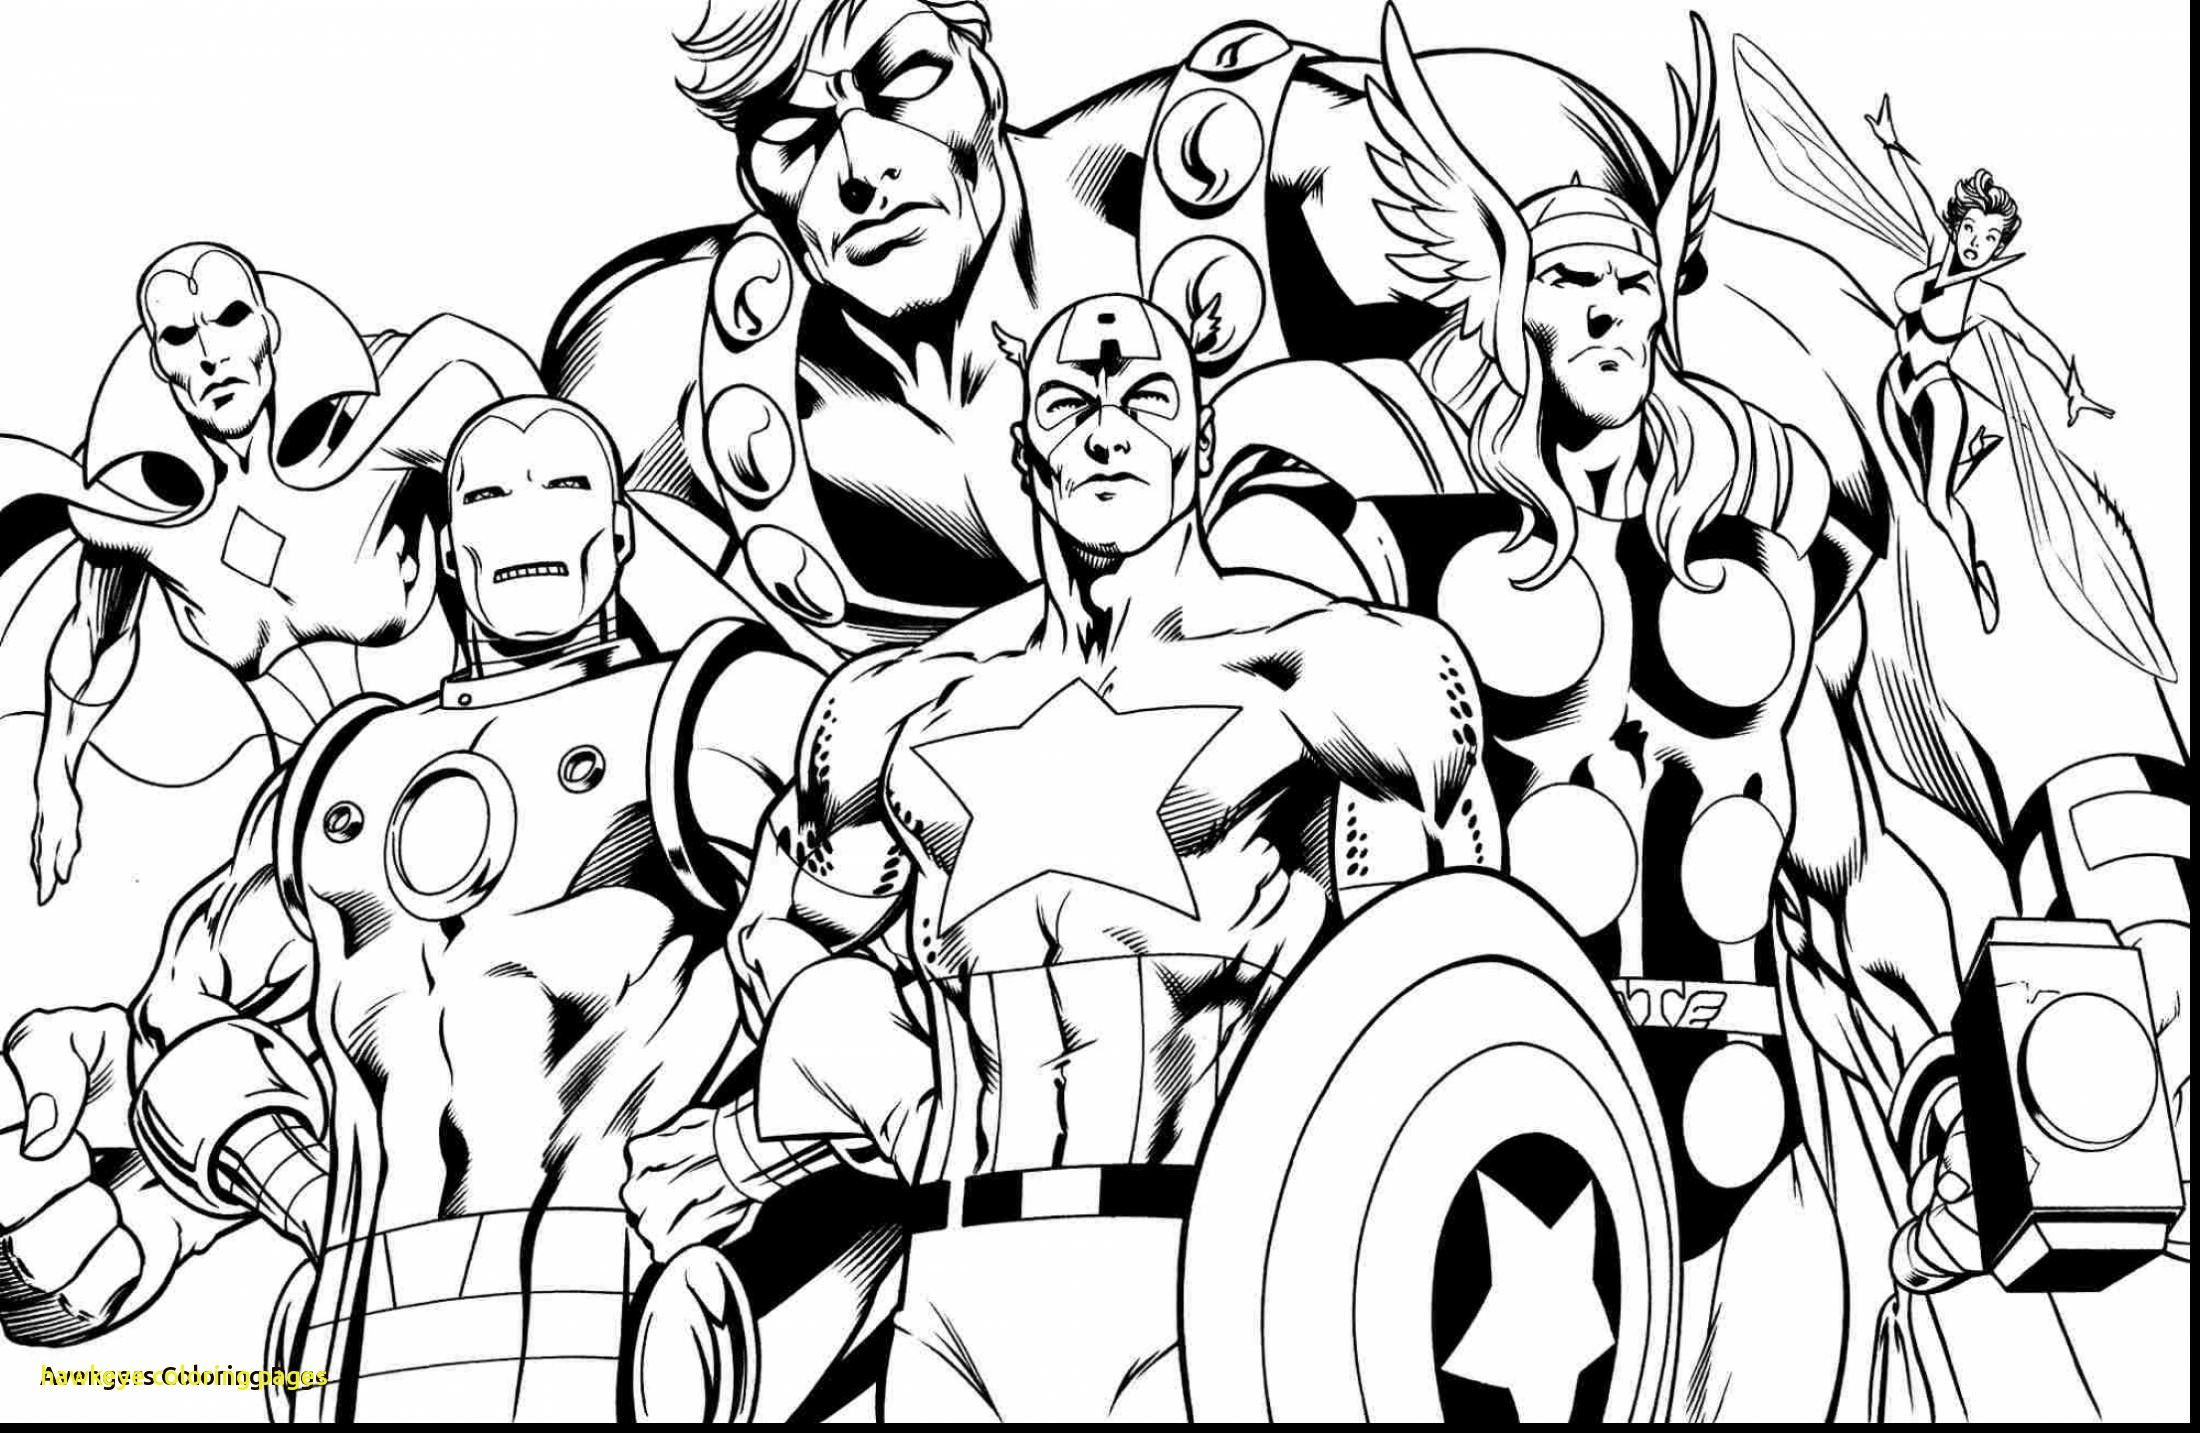 Printable Marvel Vs Capcom Hawkeye Abilities Coloring Pages Coloring Pages Avengers Coloring Pages Free Coloring Pages